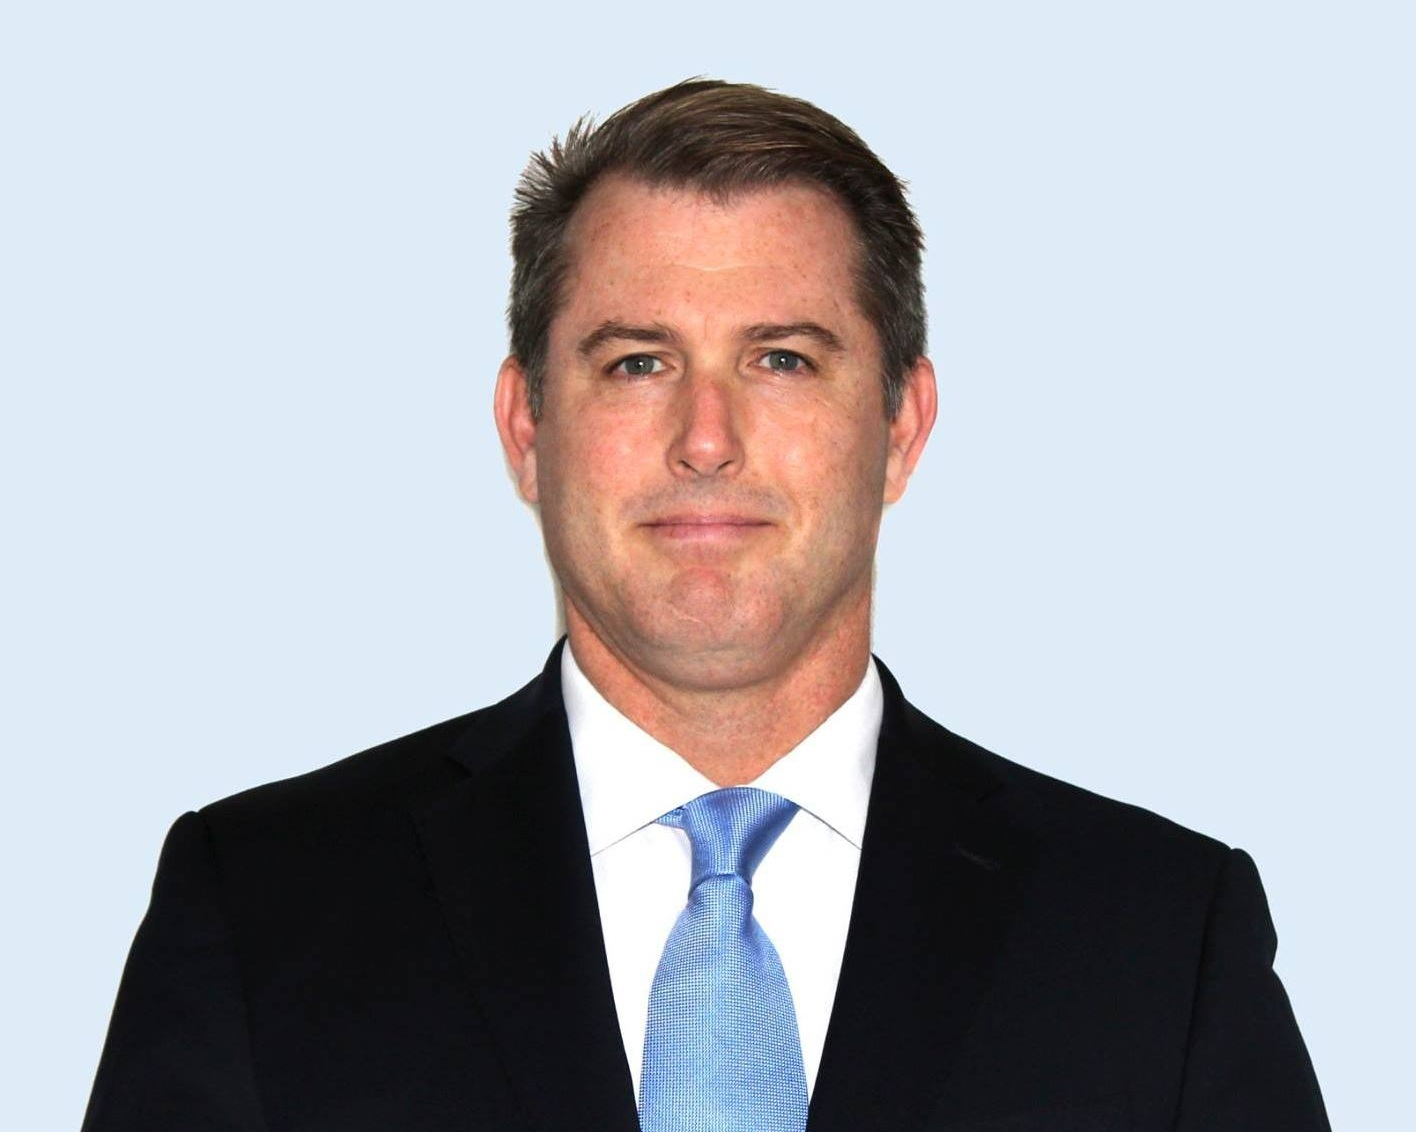 John Stokoe - John has built a successful career in London as an IT Manager in the banking sector. He didn't let his success end there and over the past 15 years steadily built a property portfolio in London and North England. John is a Legacy Advanced trained investor.